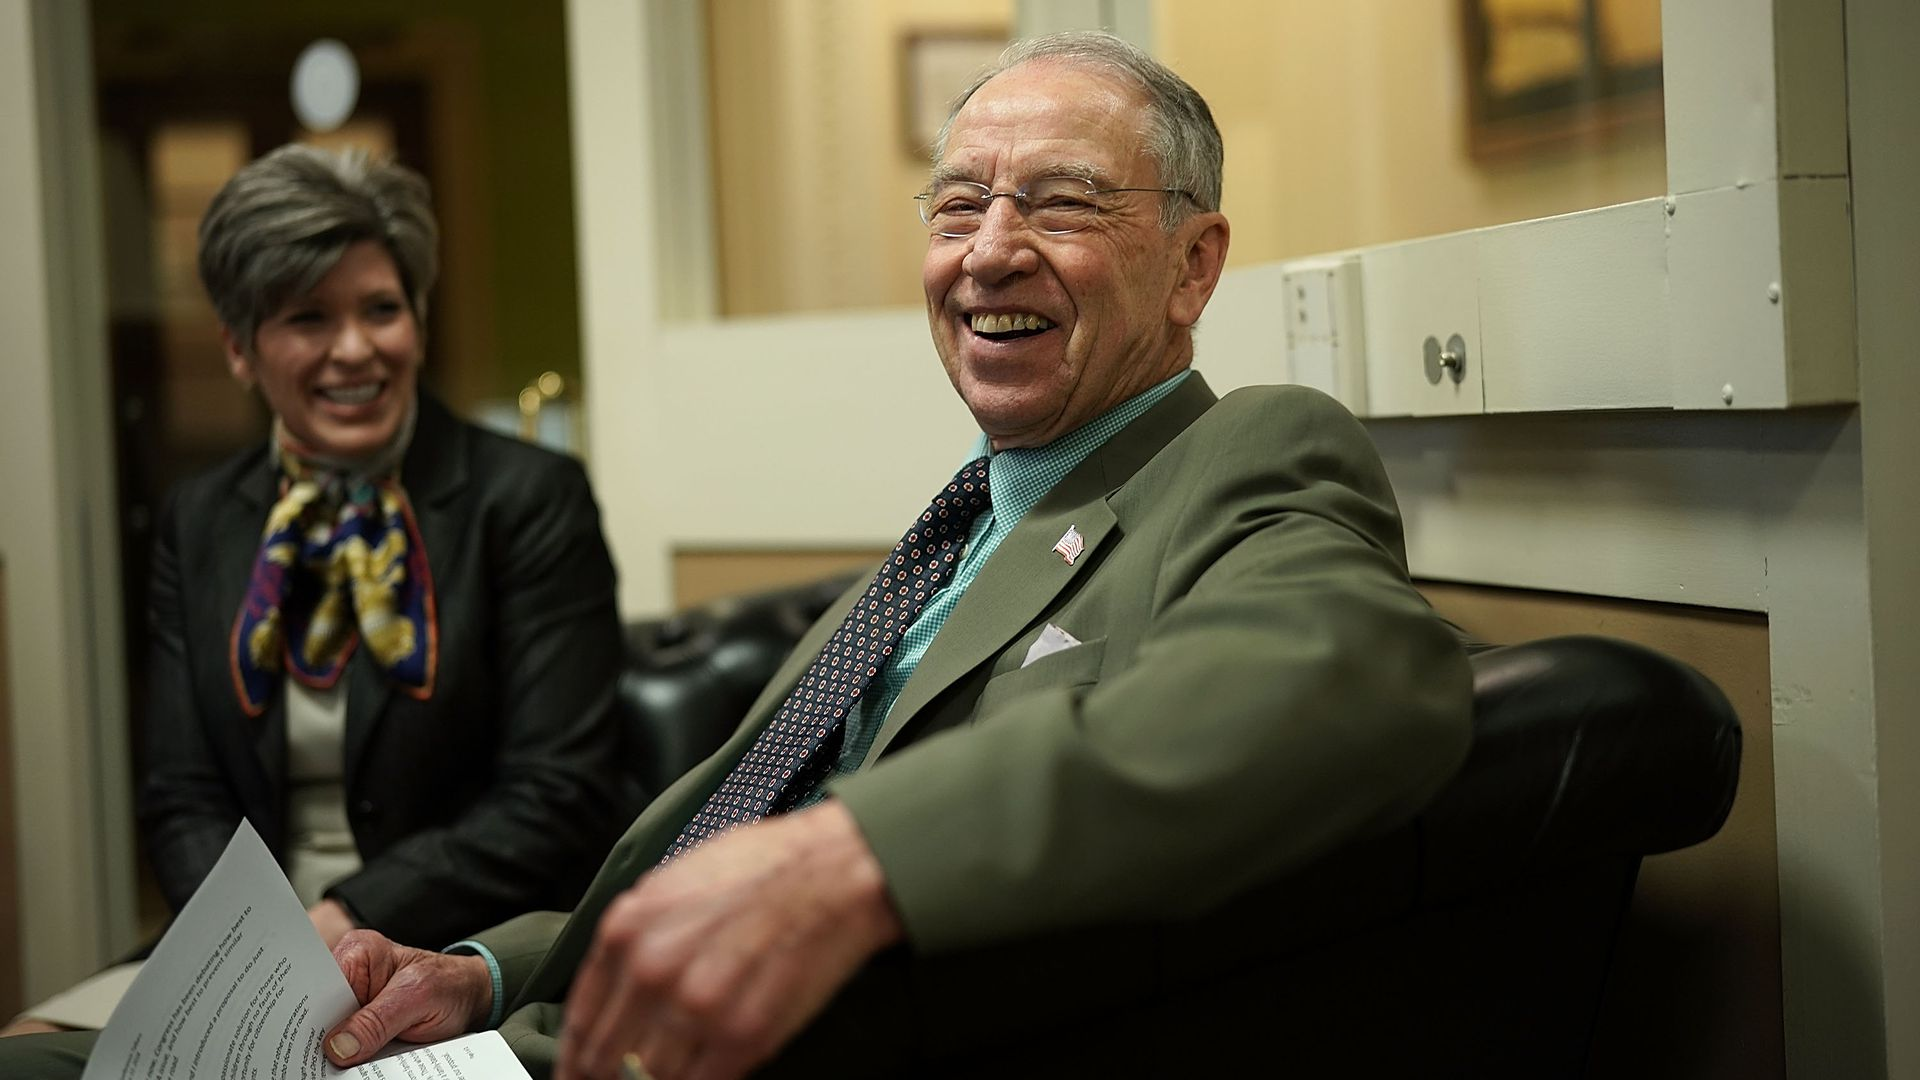 Chuck Grassley sitting with papers and laughing